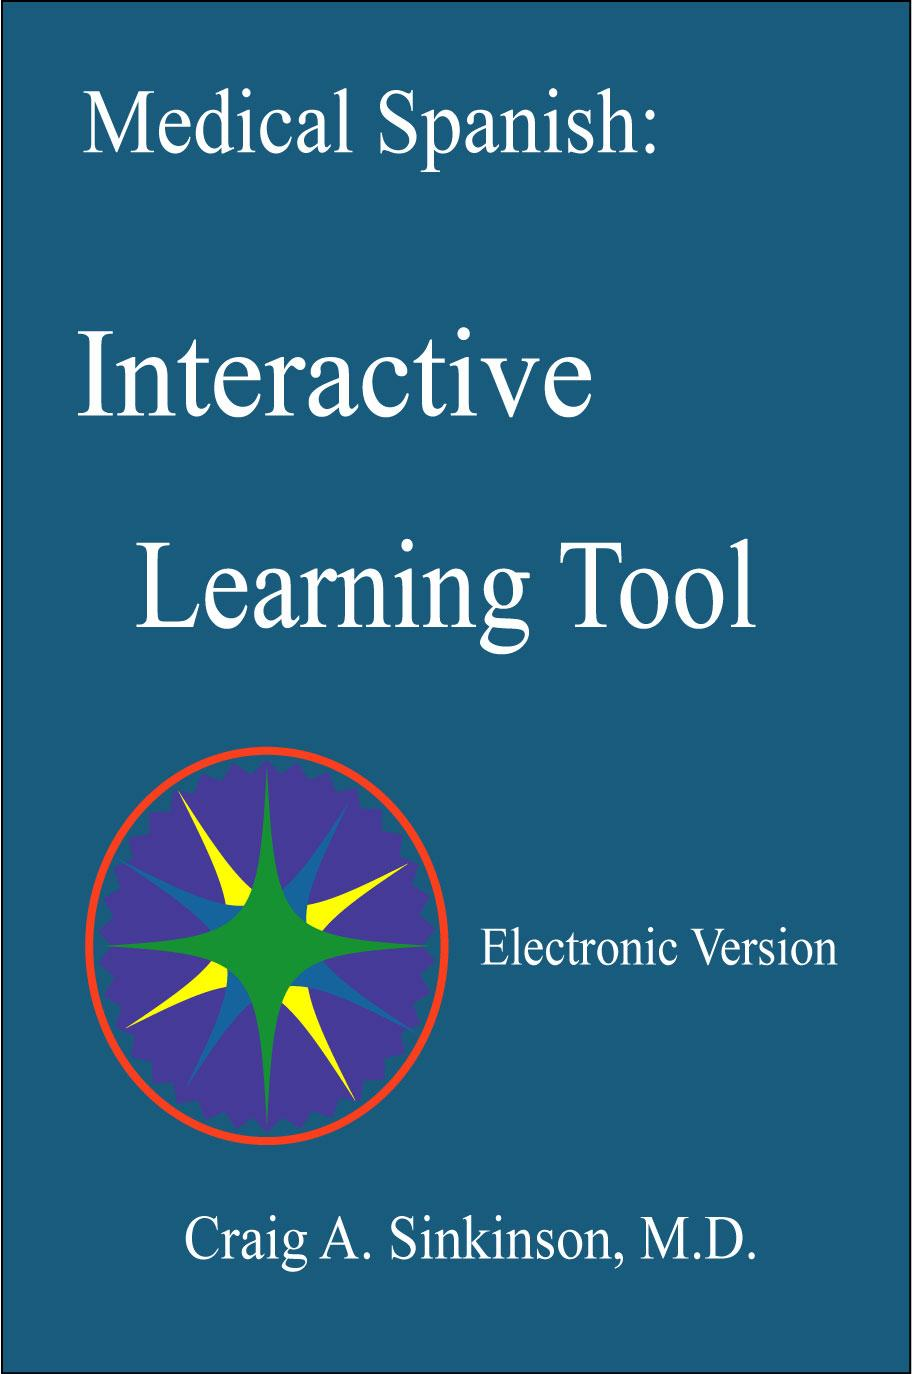 Medical Spanish: Interactive Learning Tool EB9781935799641